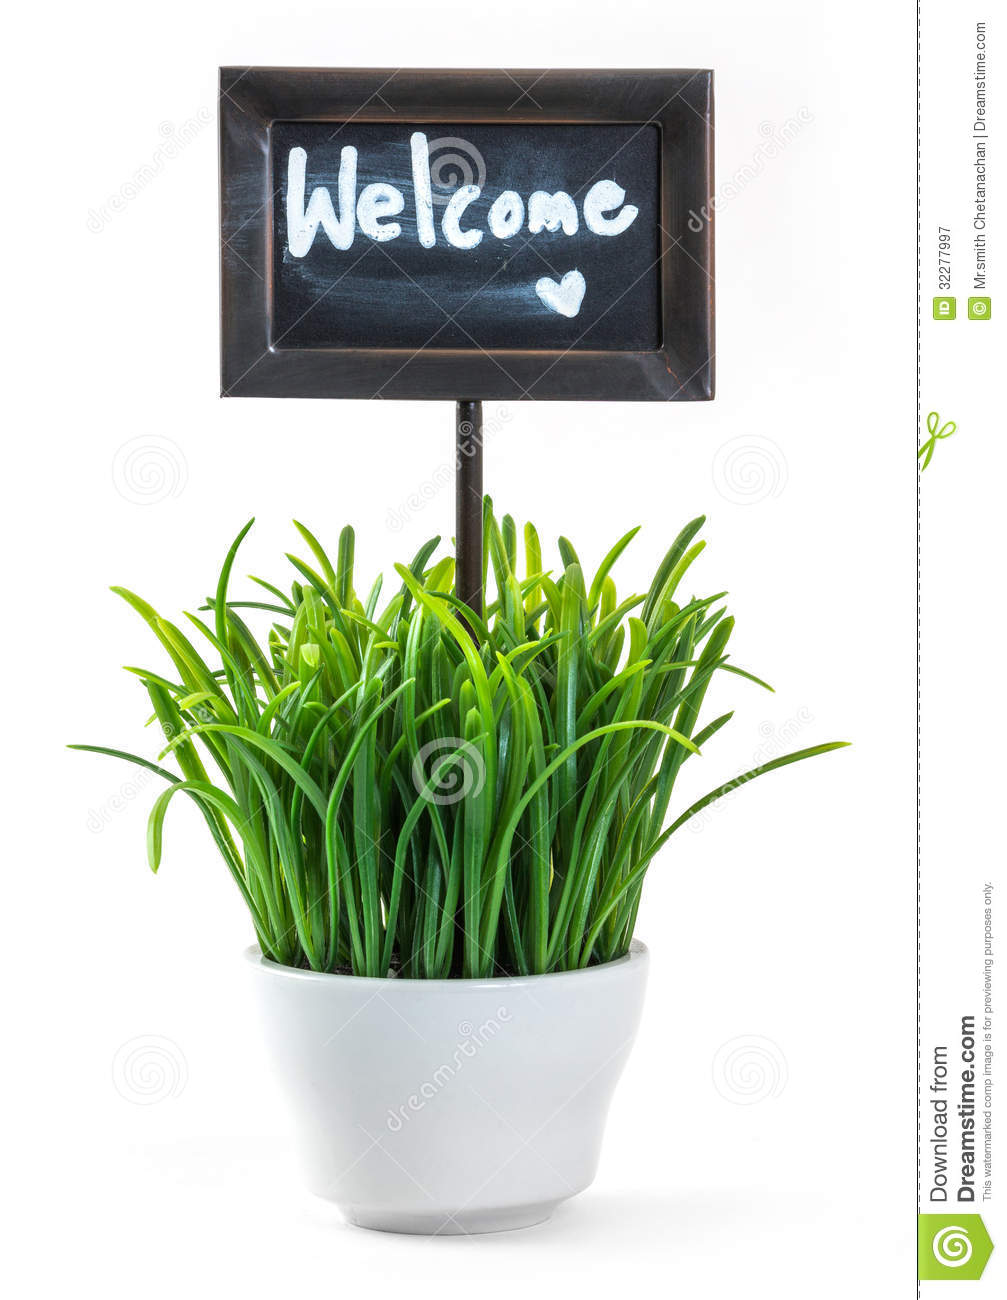 Welcome sign and grass in ceramic pot